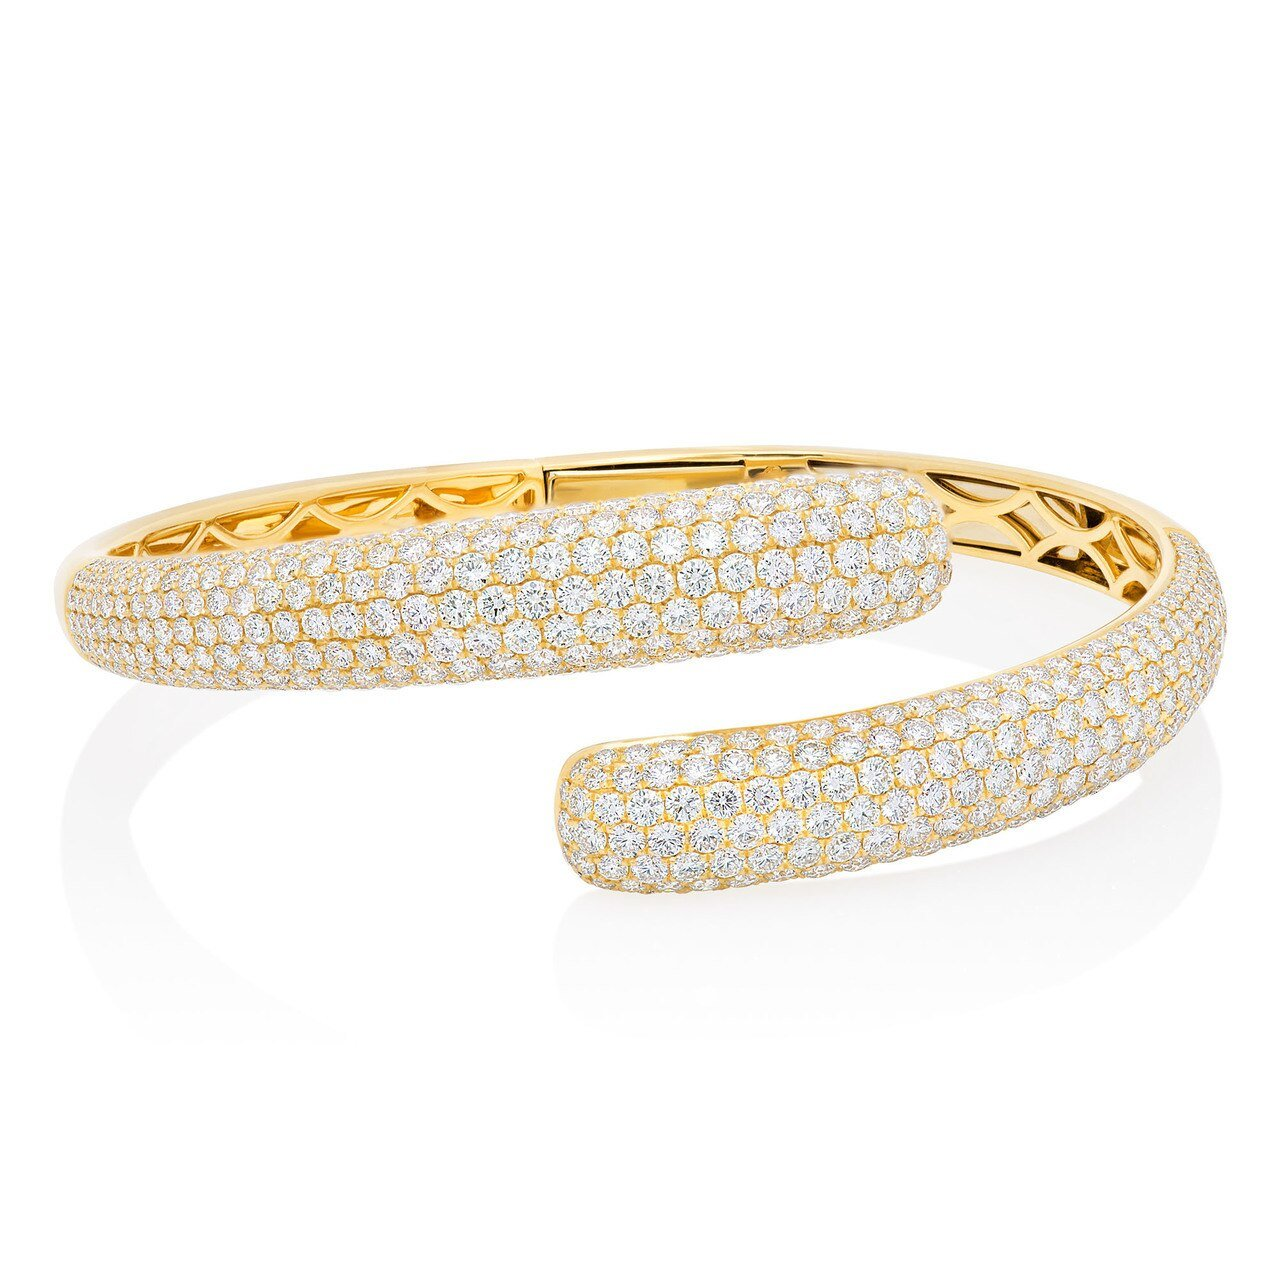 Pave Diamond Cuff Bangle Bracelet